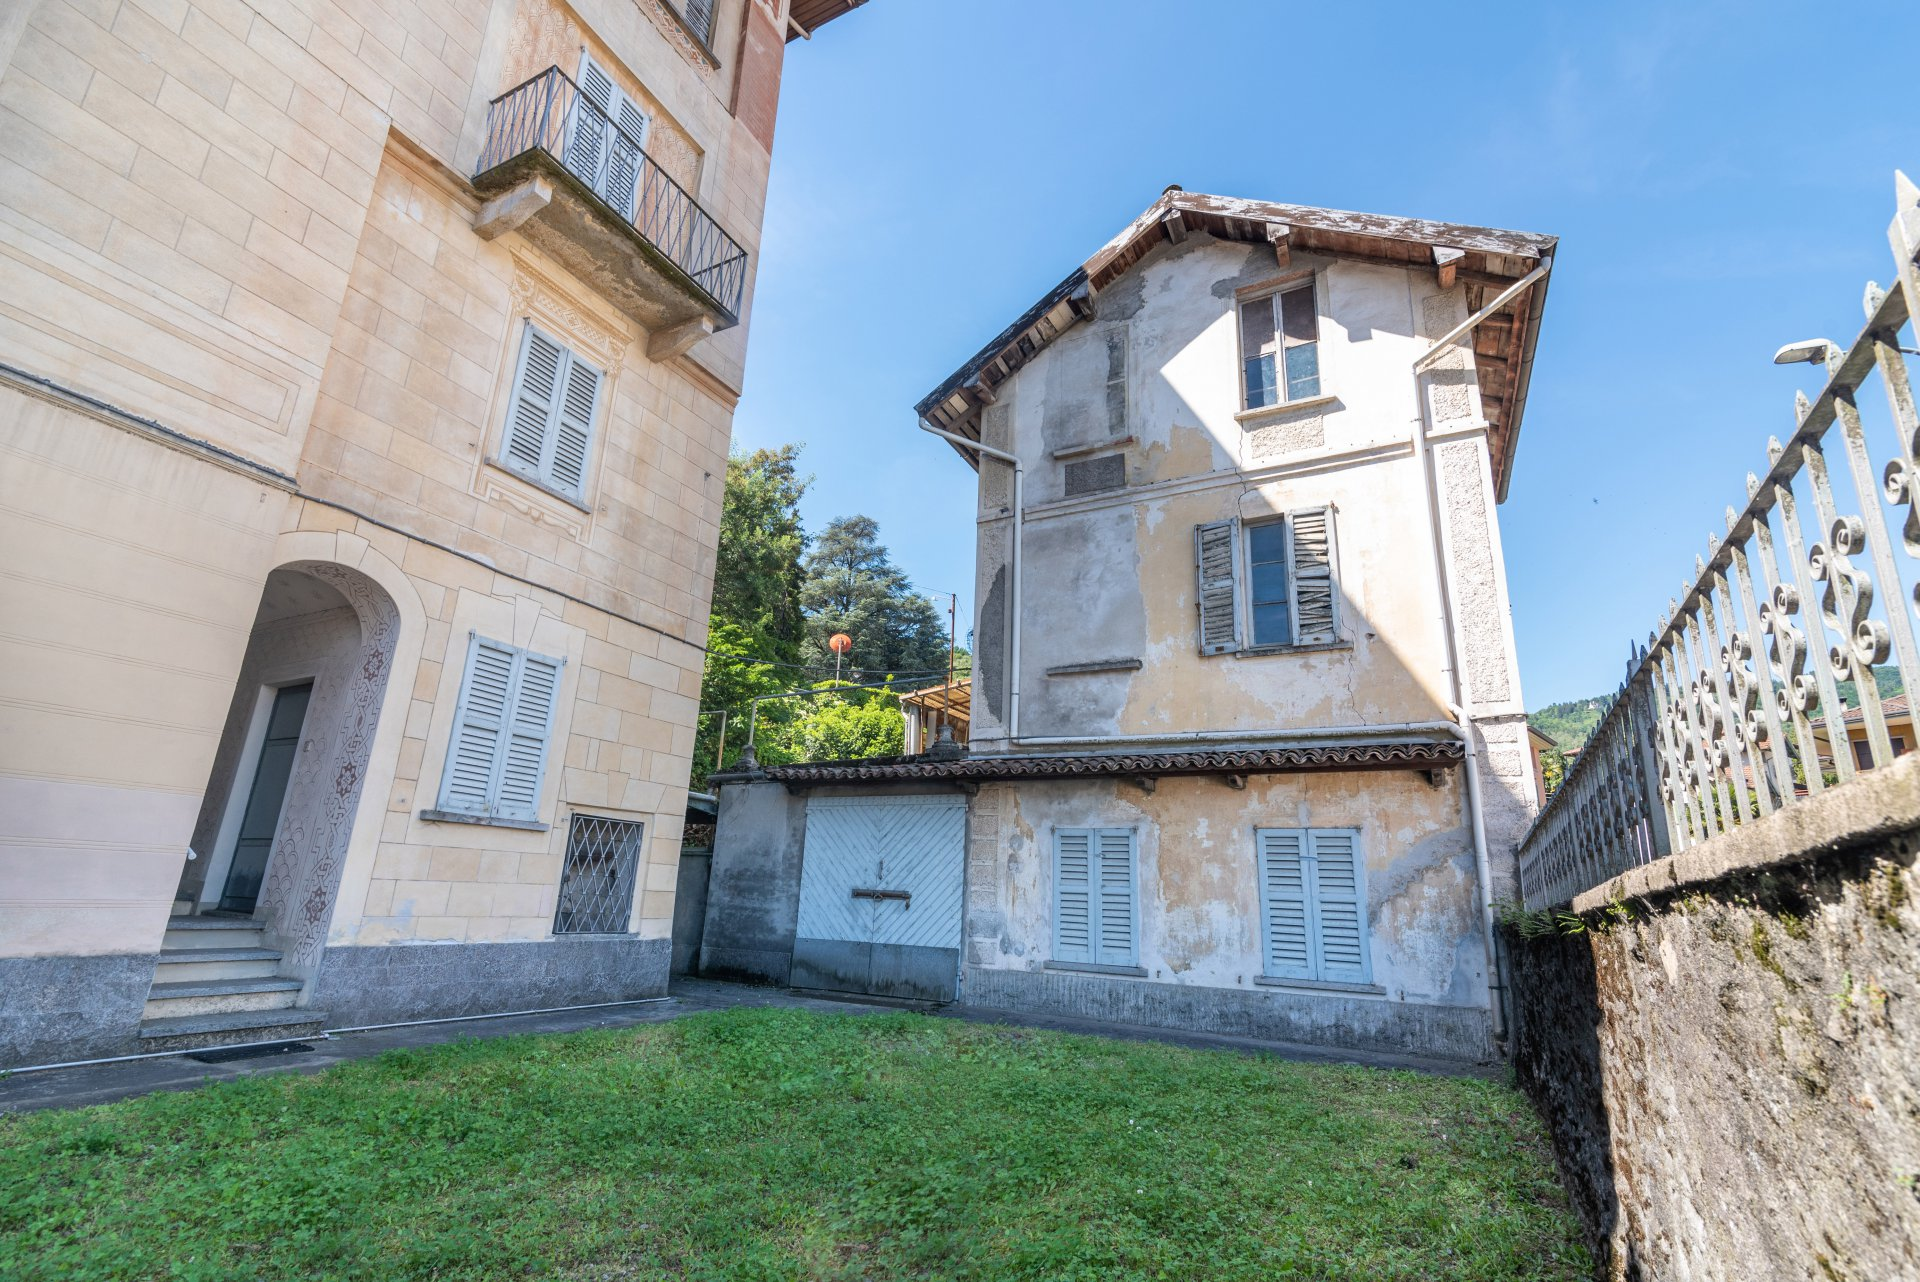 Property for sale in the centre of Stresa- little garden